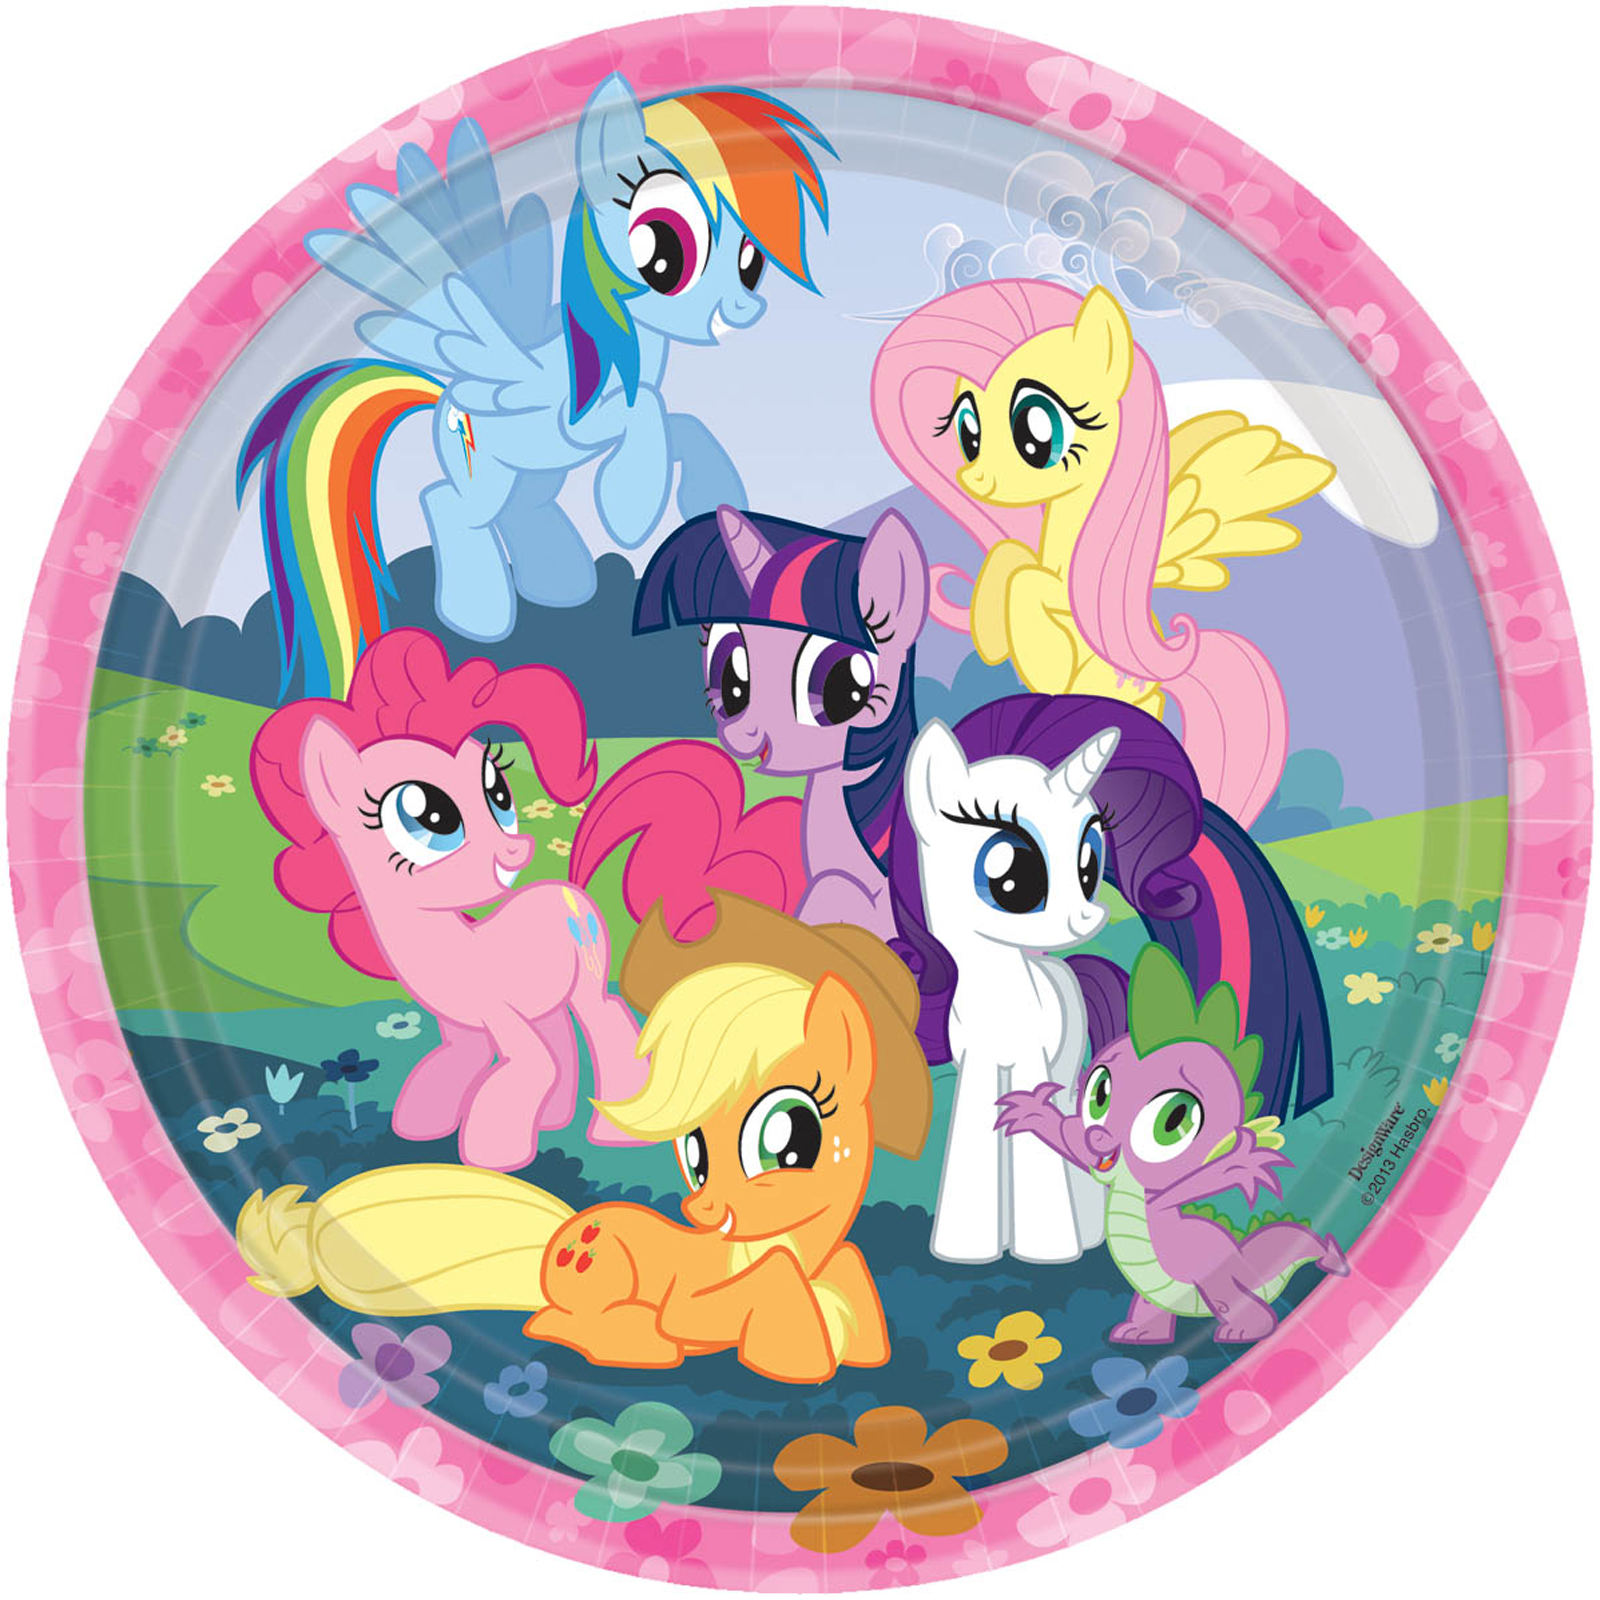 Default Image - My Little Pony Friendship Magic Dinner Plates  sc 1 st  Birthday Express & My Little Pony Friendship Magic Dinner Plates | BirthdayExpress.com